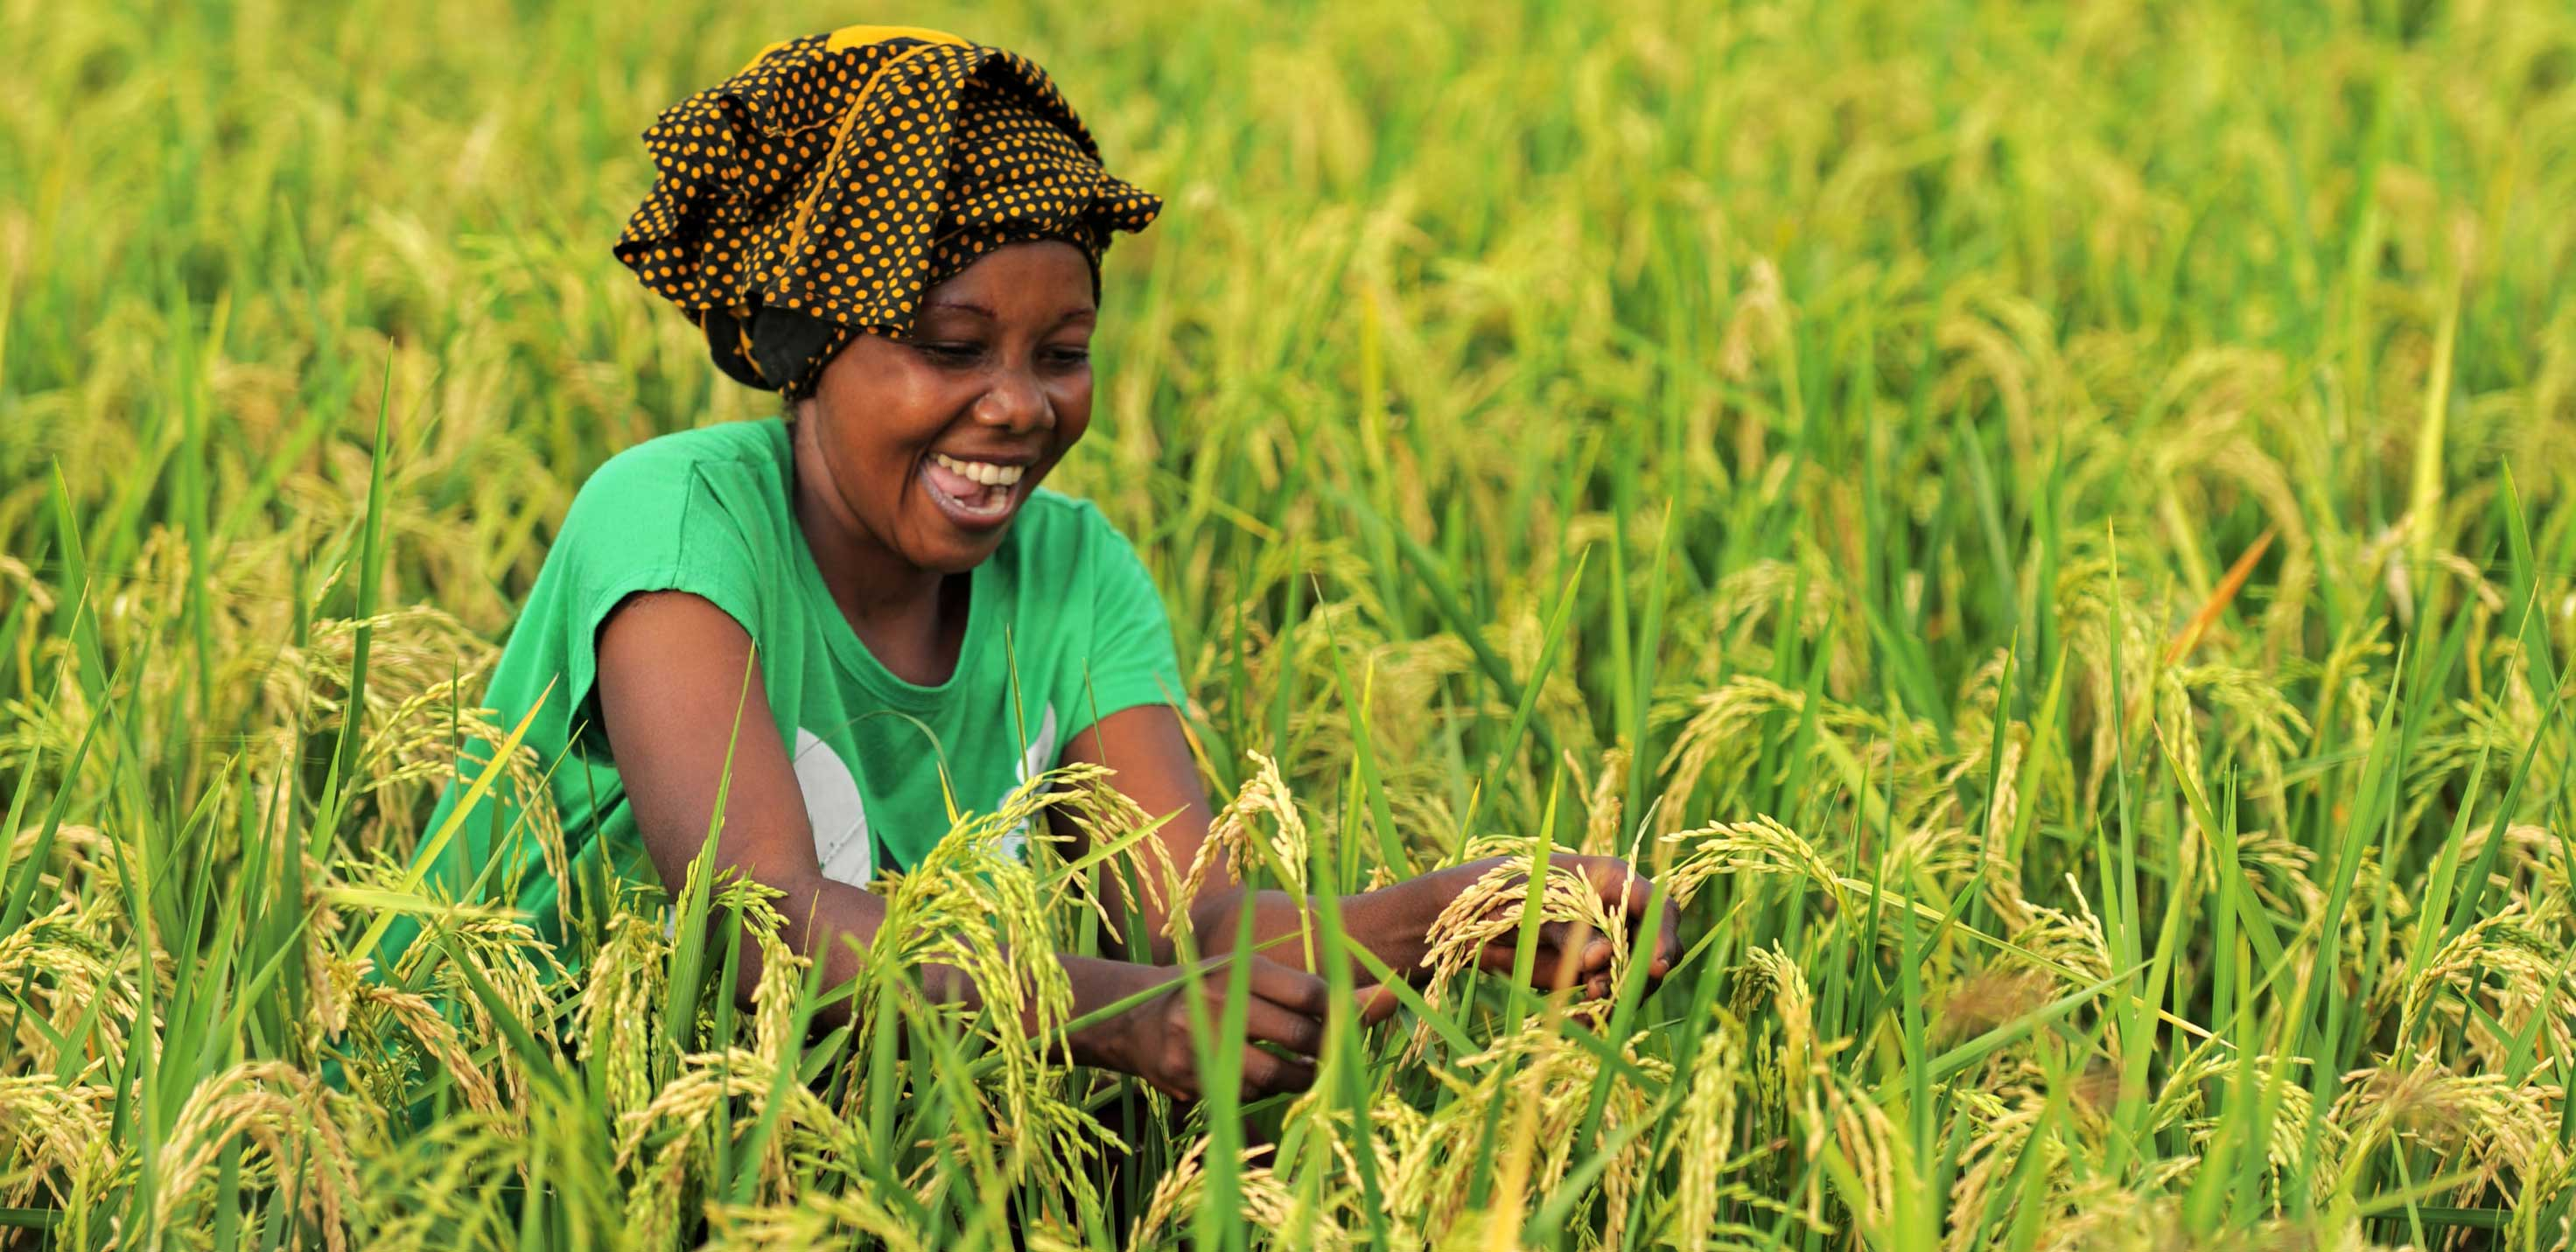 National Adaptation Plans: Building Climate Resilience in Agriculture